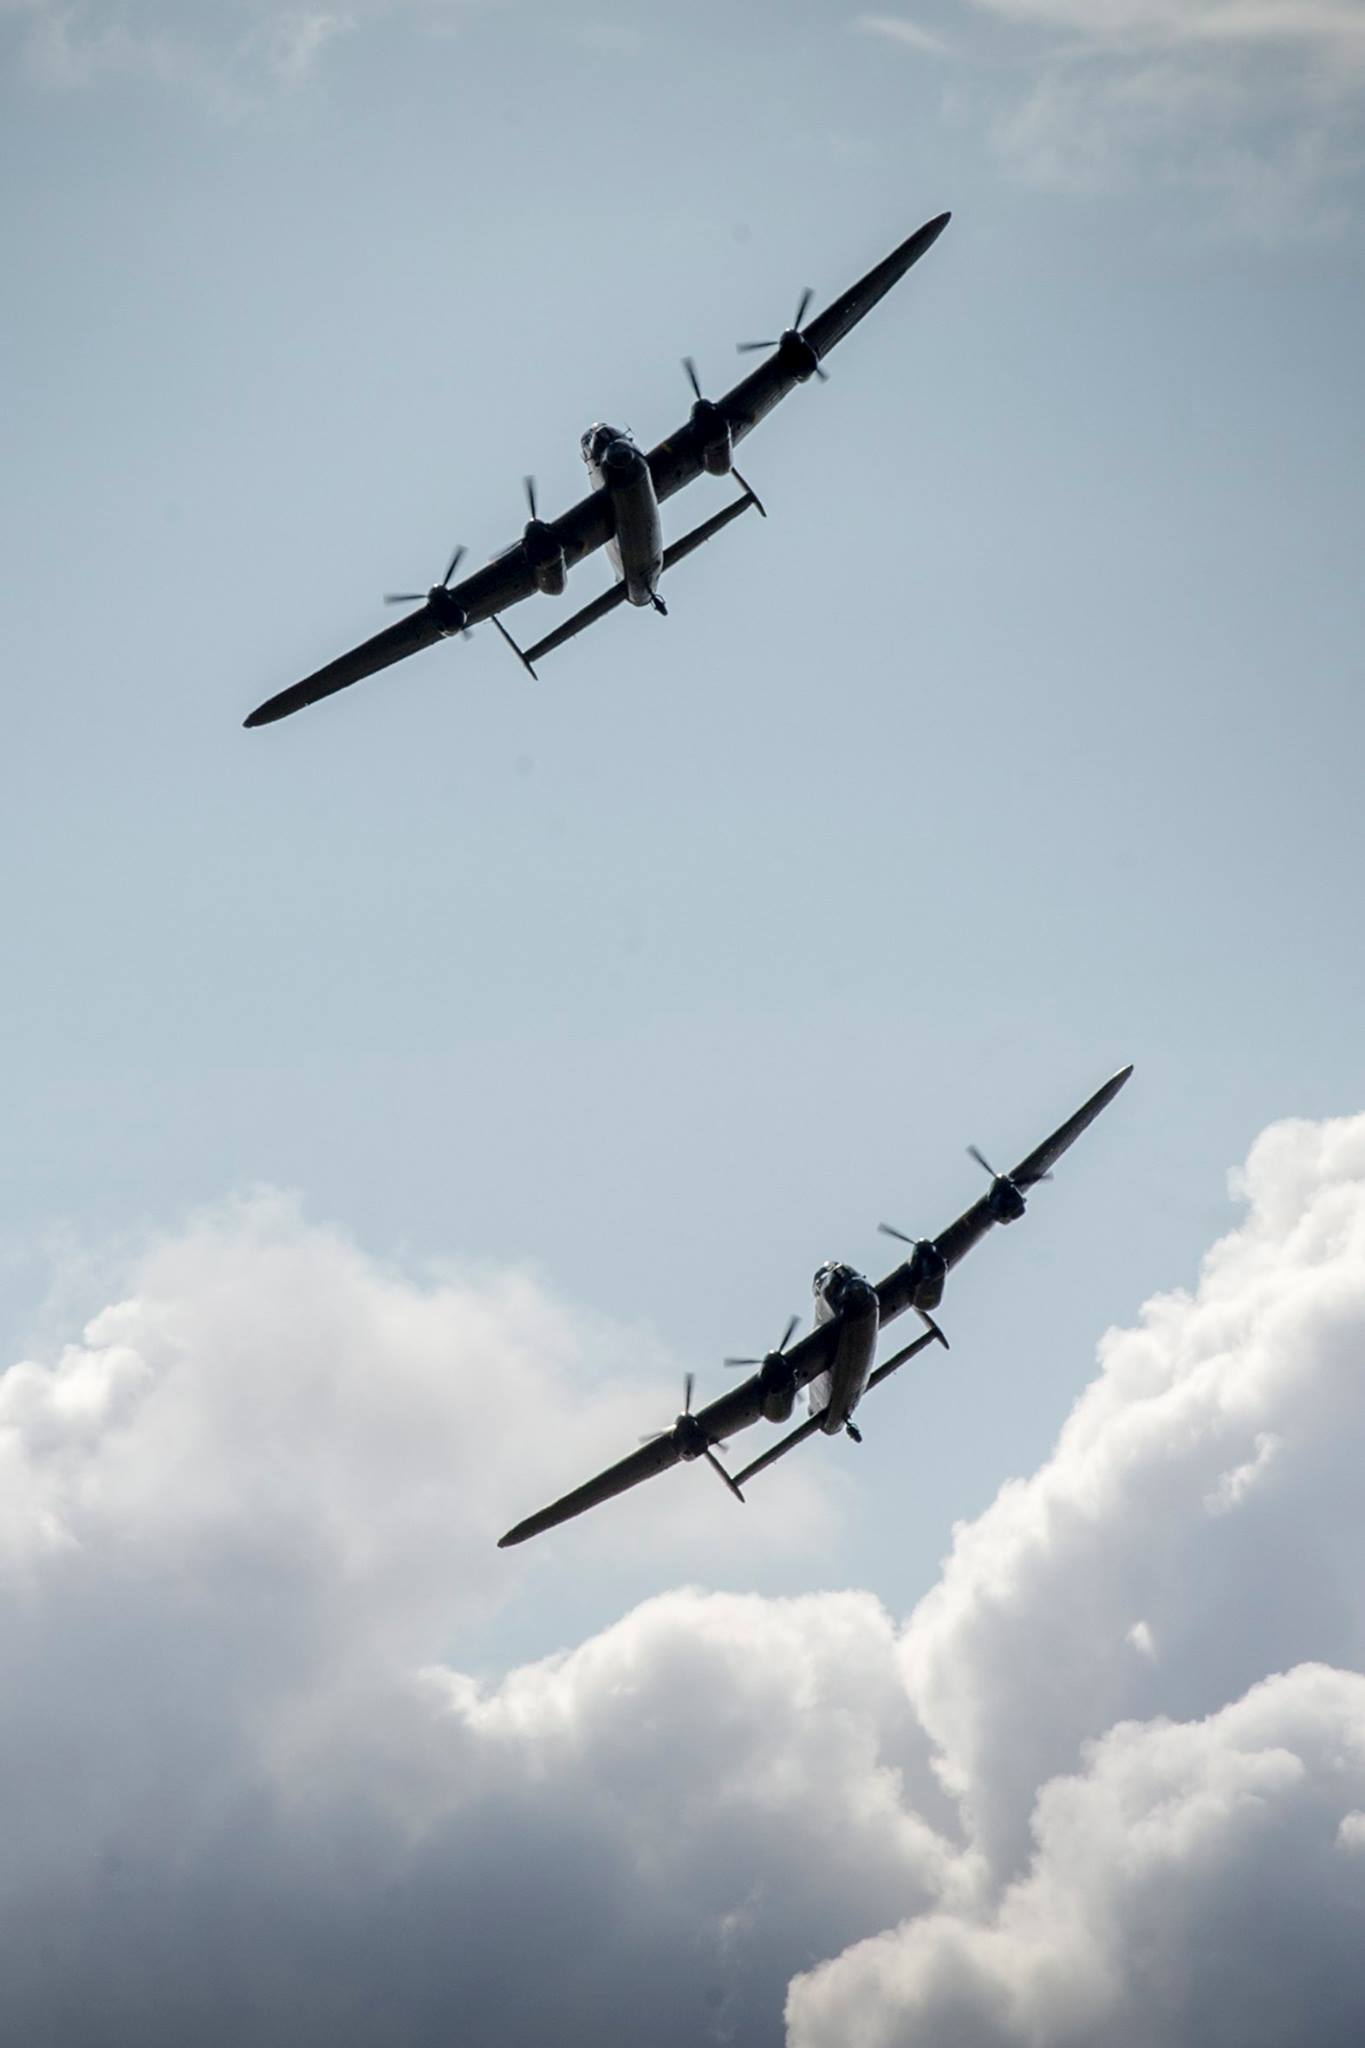 The Canadian and British Lancasters take to the skies on August 14, 2014 – the first time two Lancasters had flown together in more than 50 years. PHOTO: Gordon Elias, MoD Crown Copyright 2014